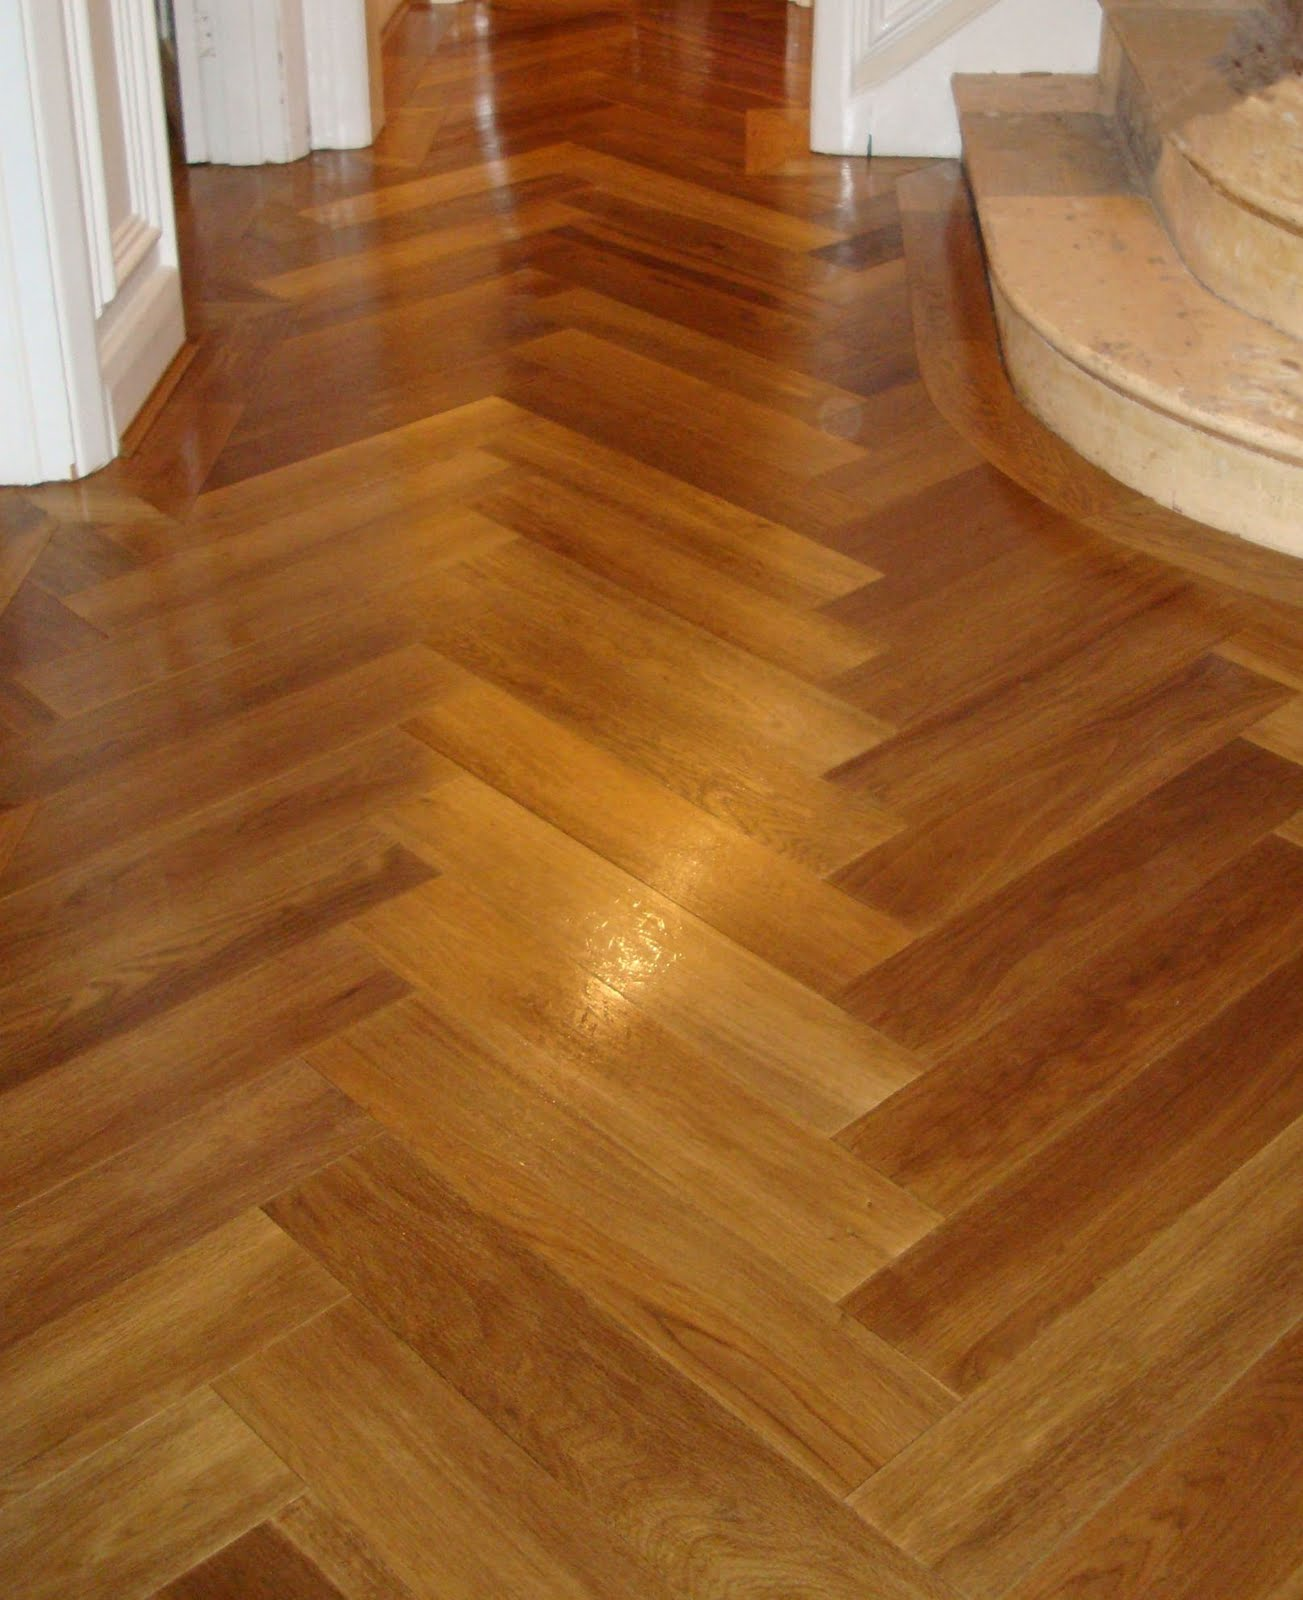 Jordan andrews july 2010 for Wood flooring choices